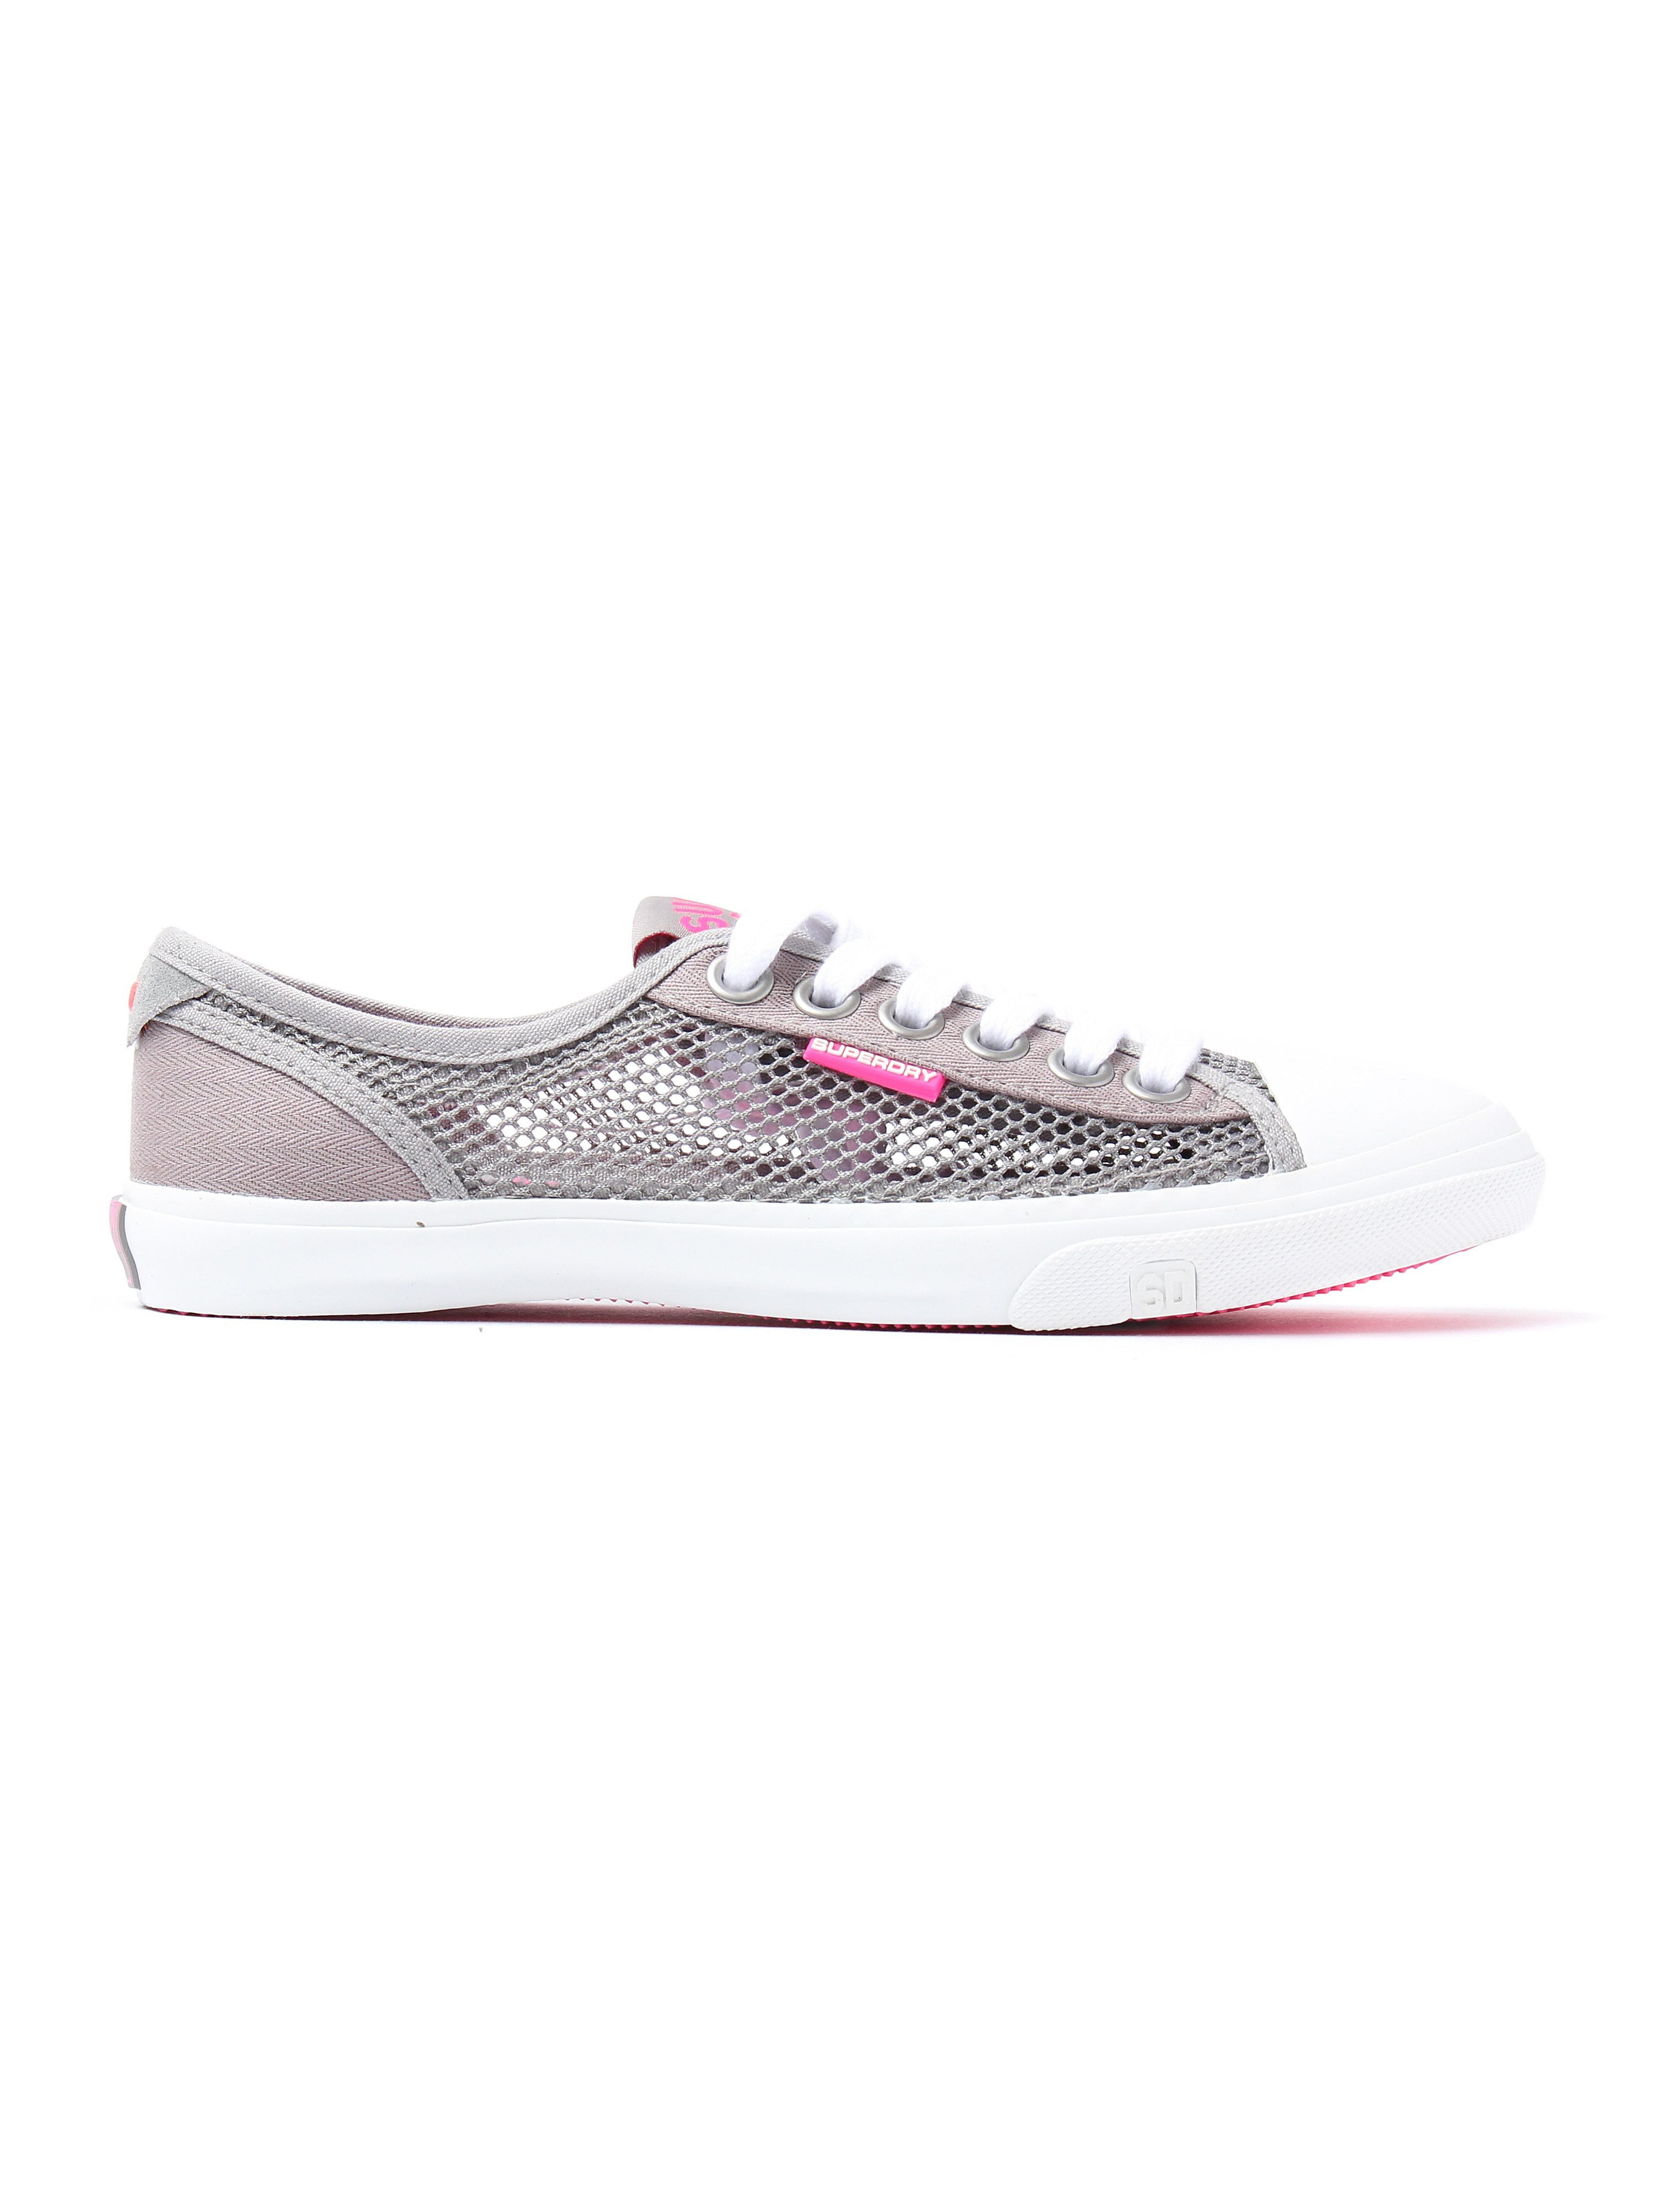 Superdry Women's Low Pro Mesh & Canvas Trainers - Mid Grey